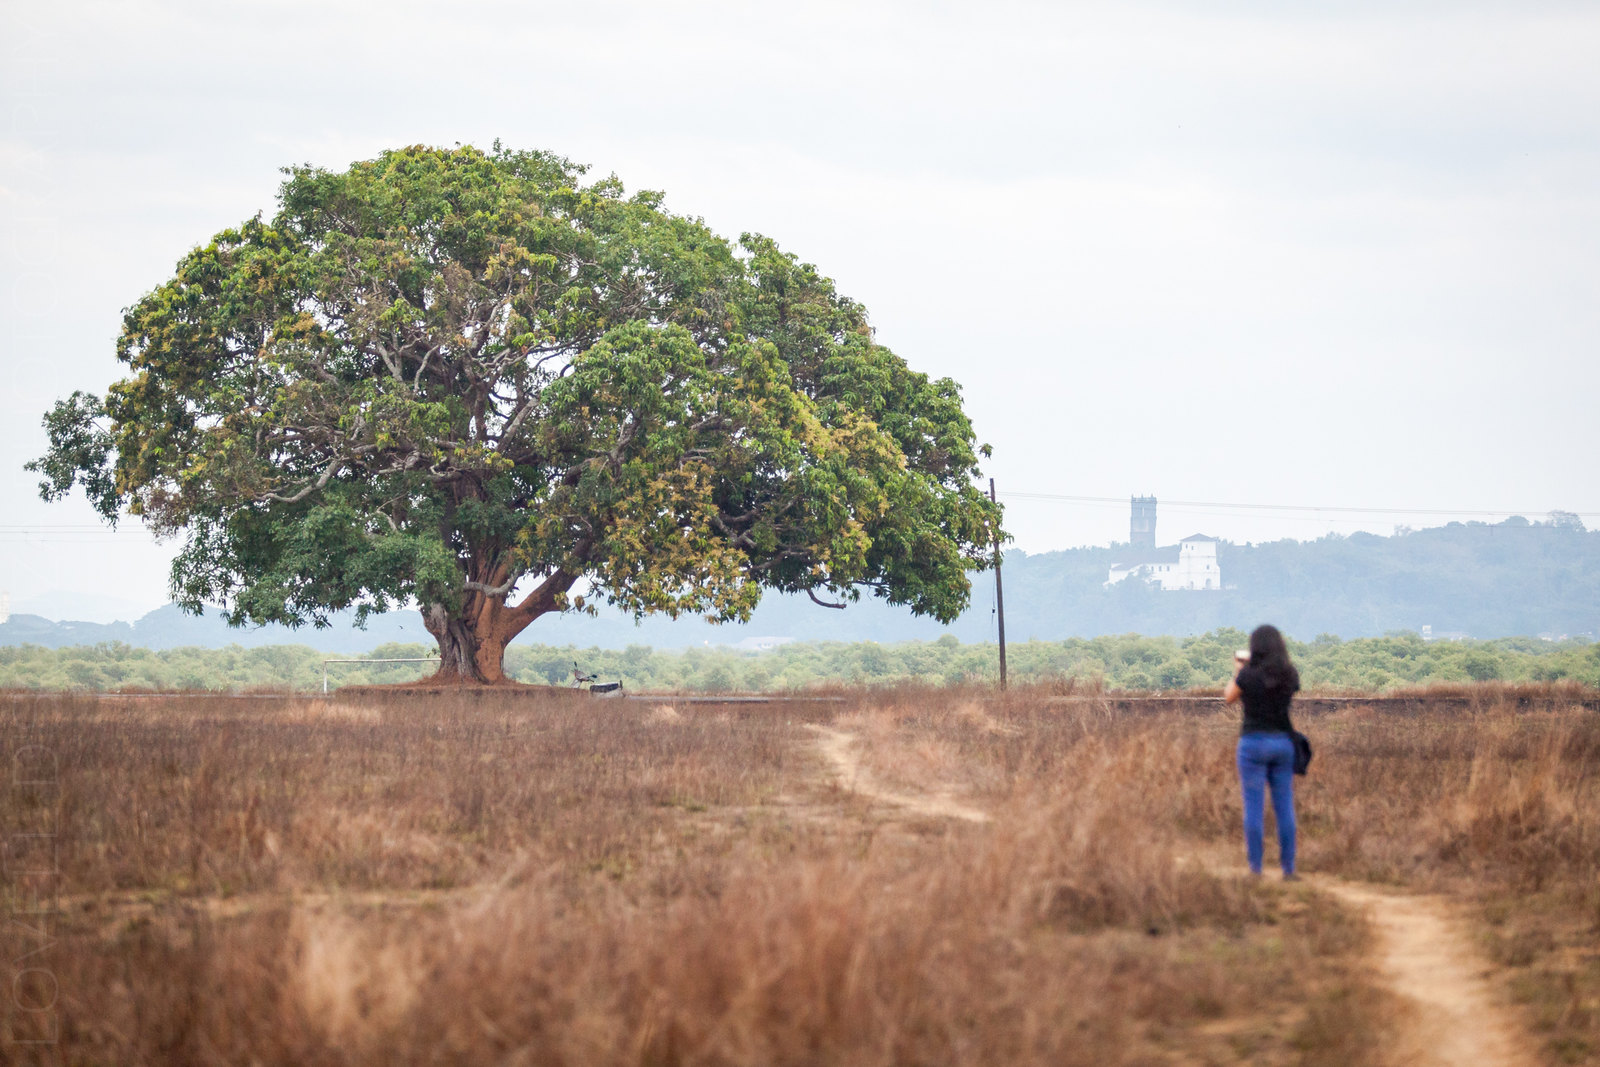 The tree along the road at Divar